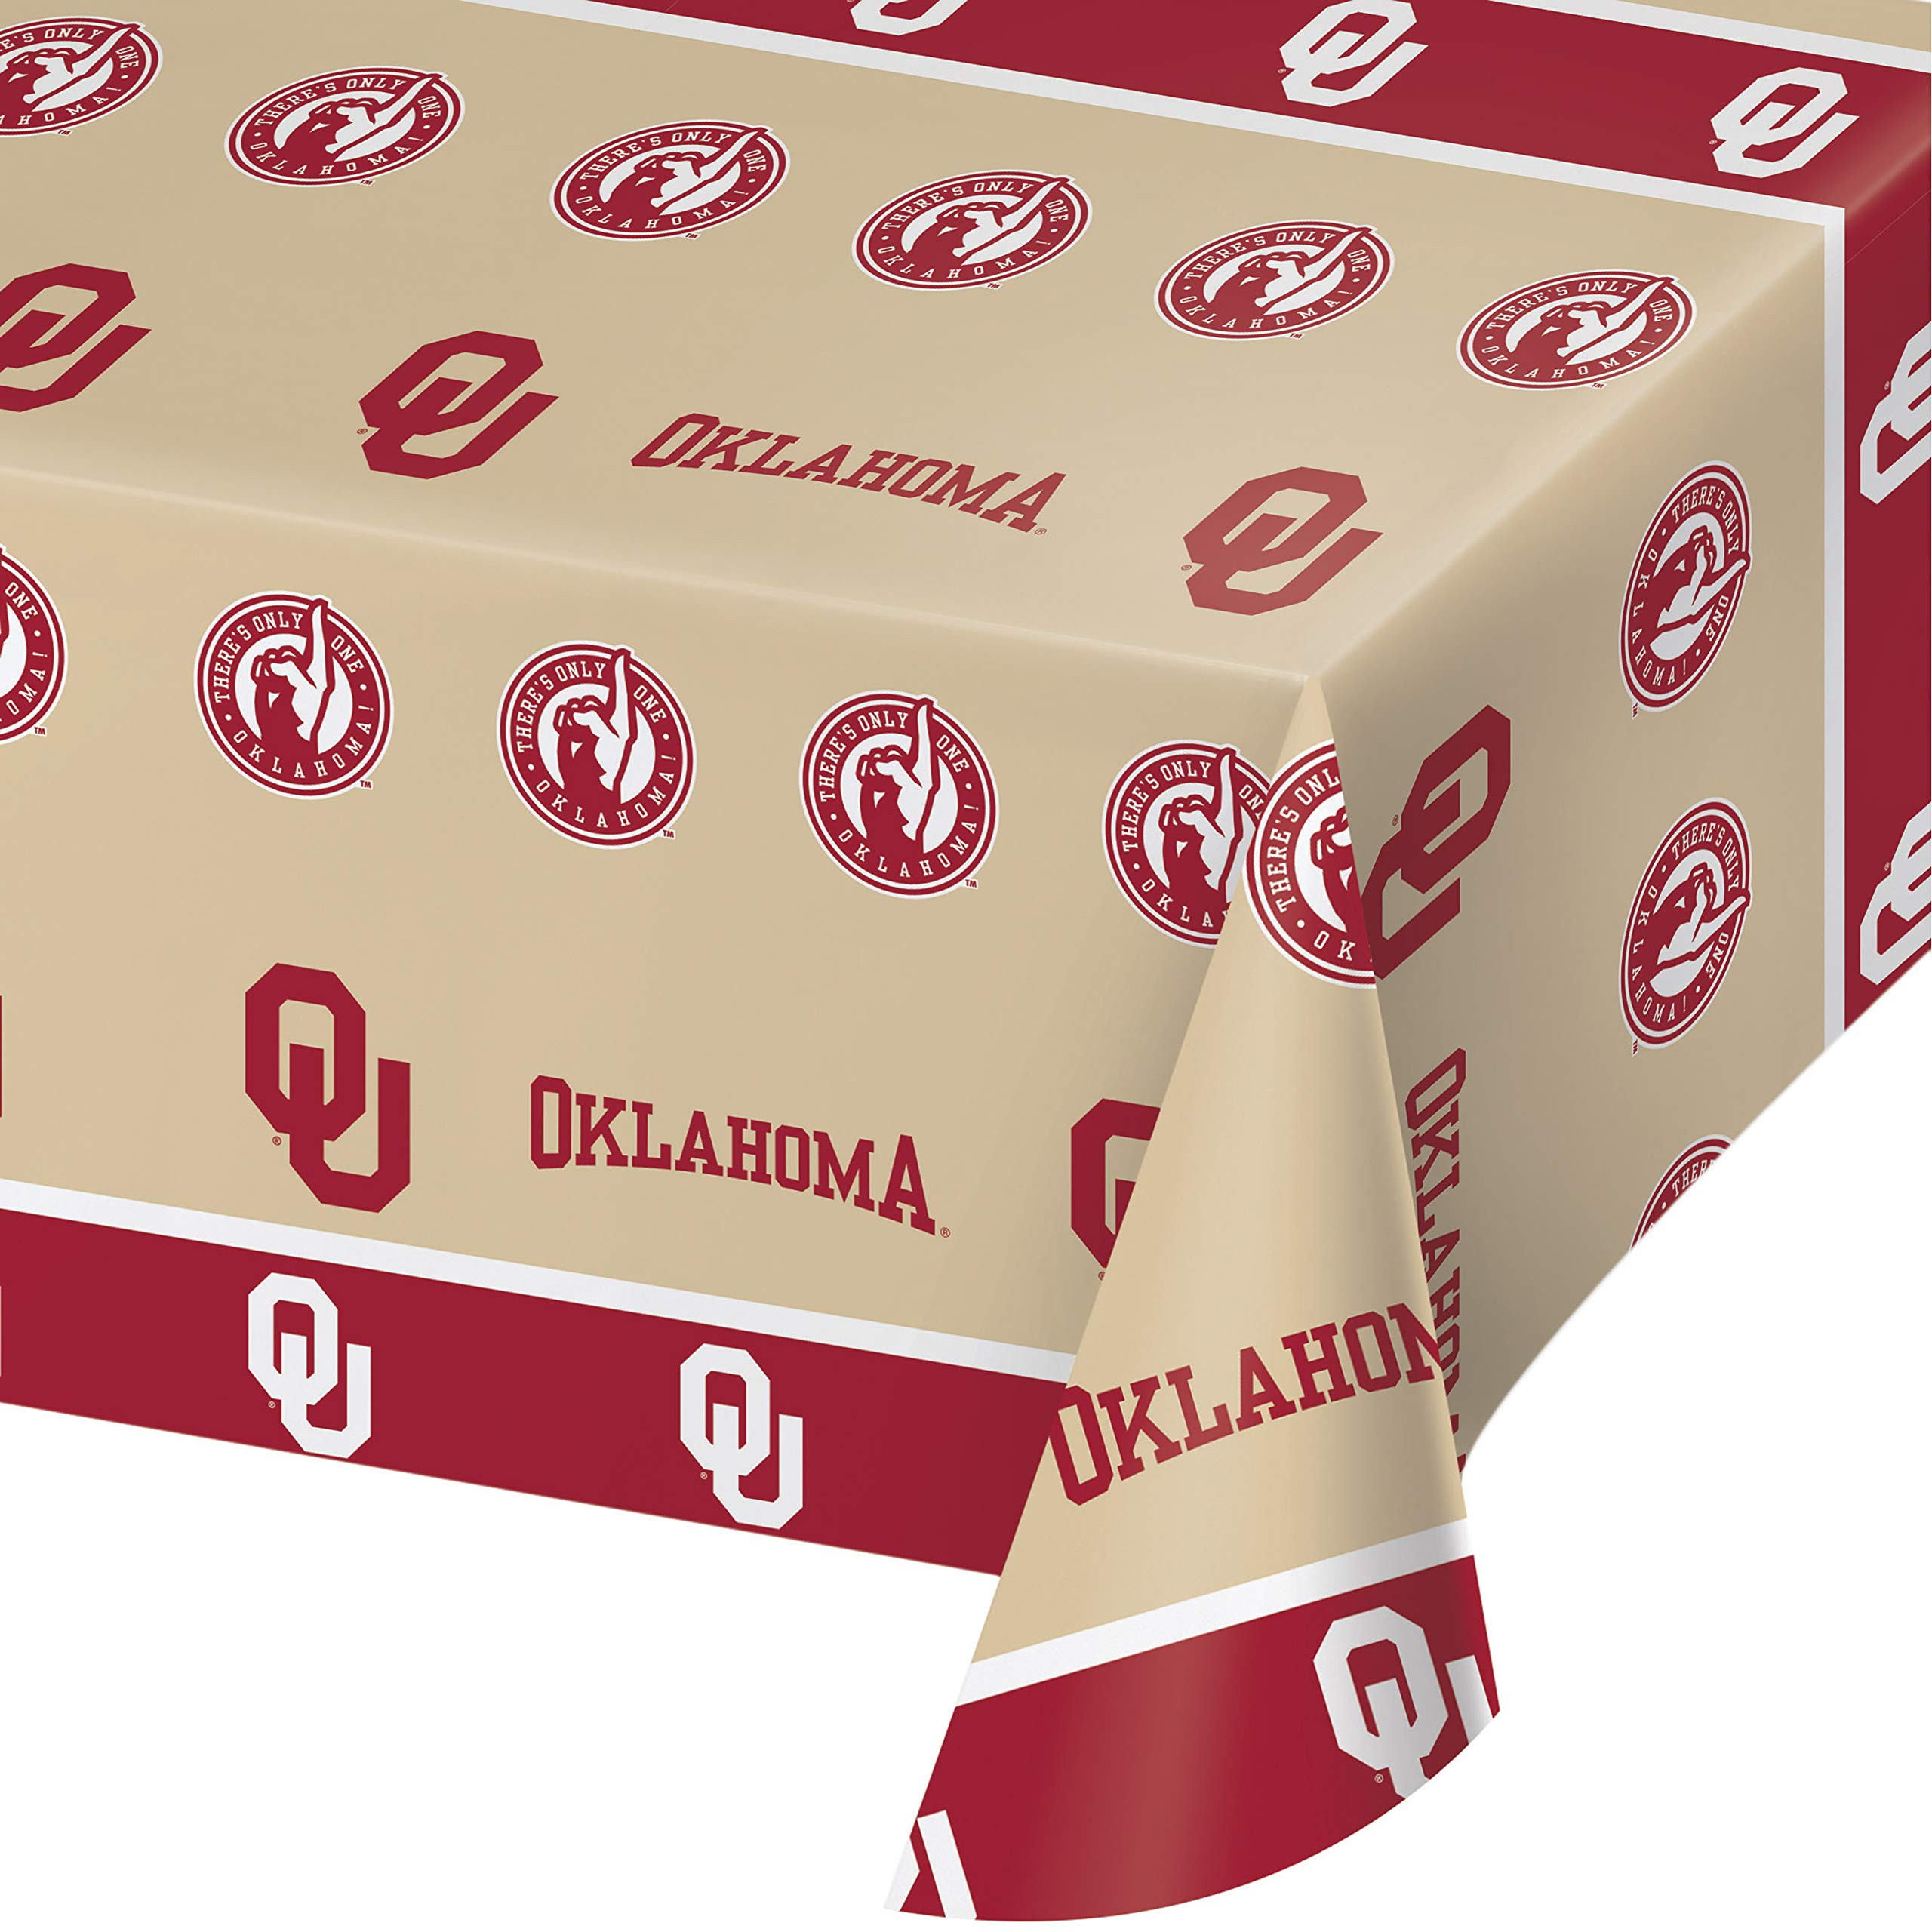 University of Oklahoma Plastic Tablecloths, 3 ct by Creative Converting